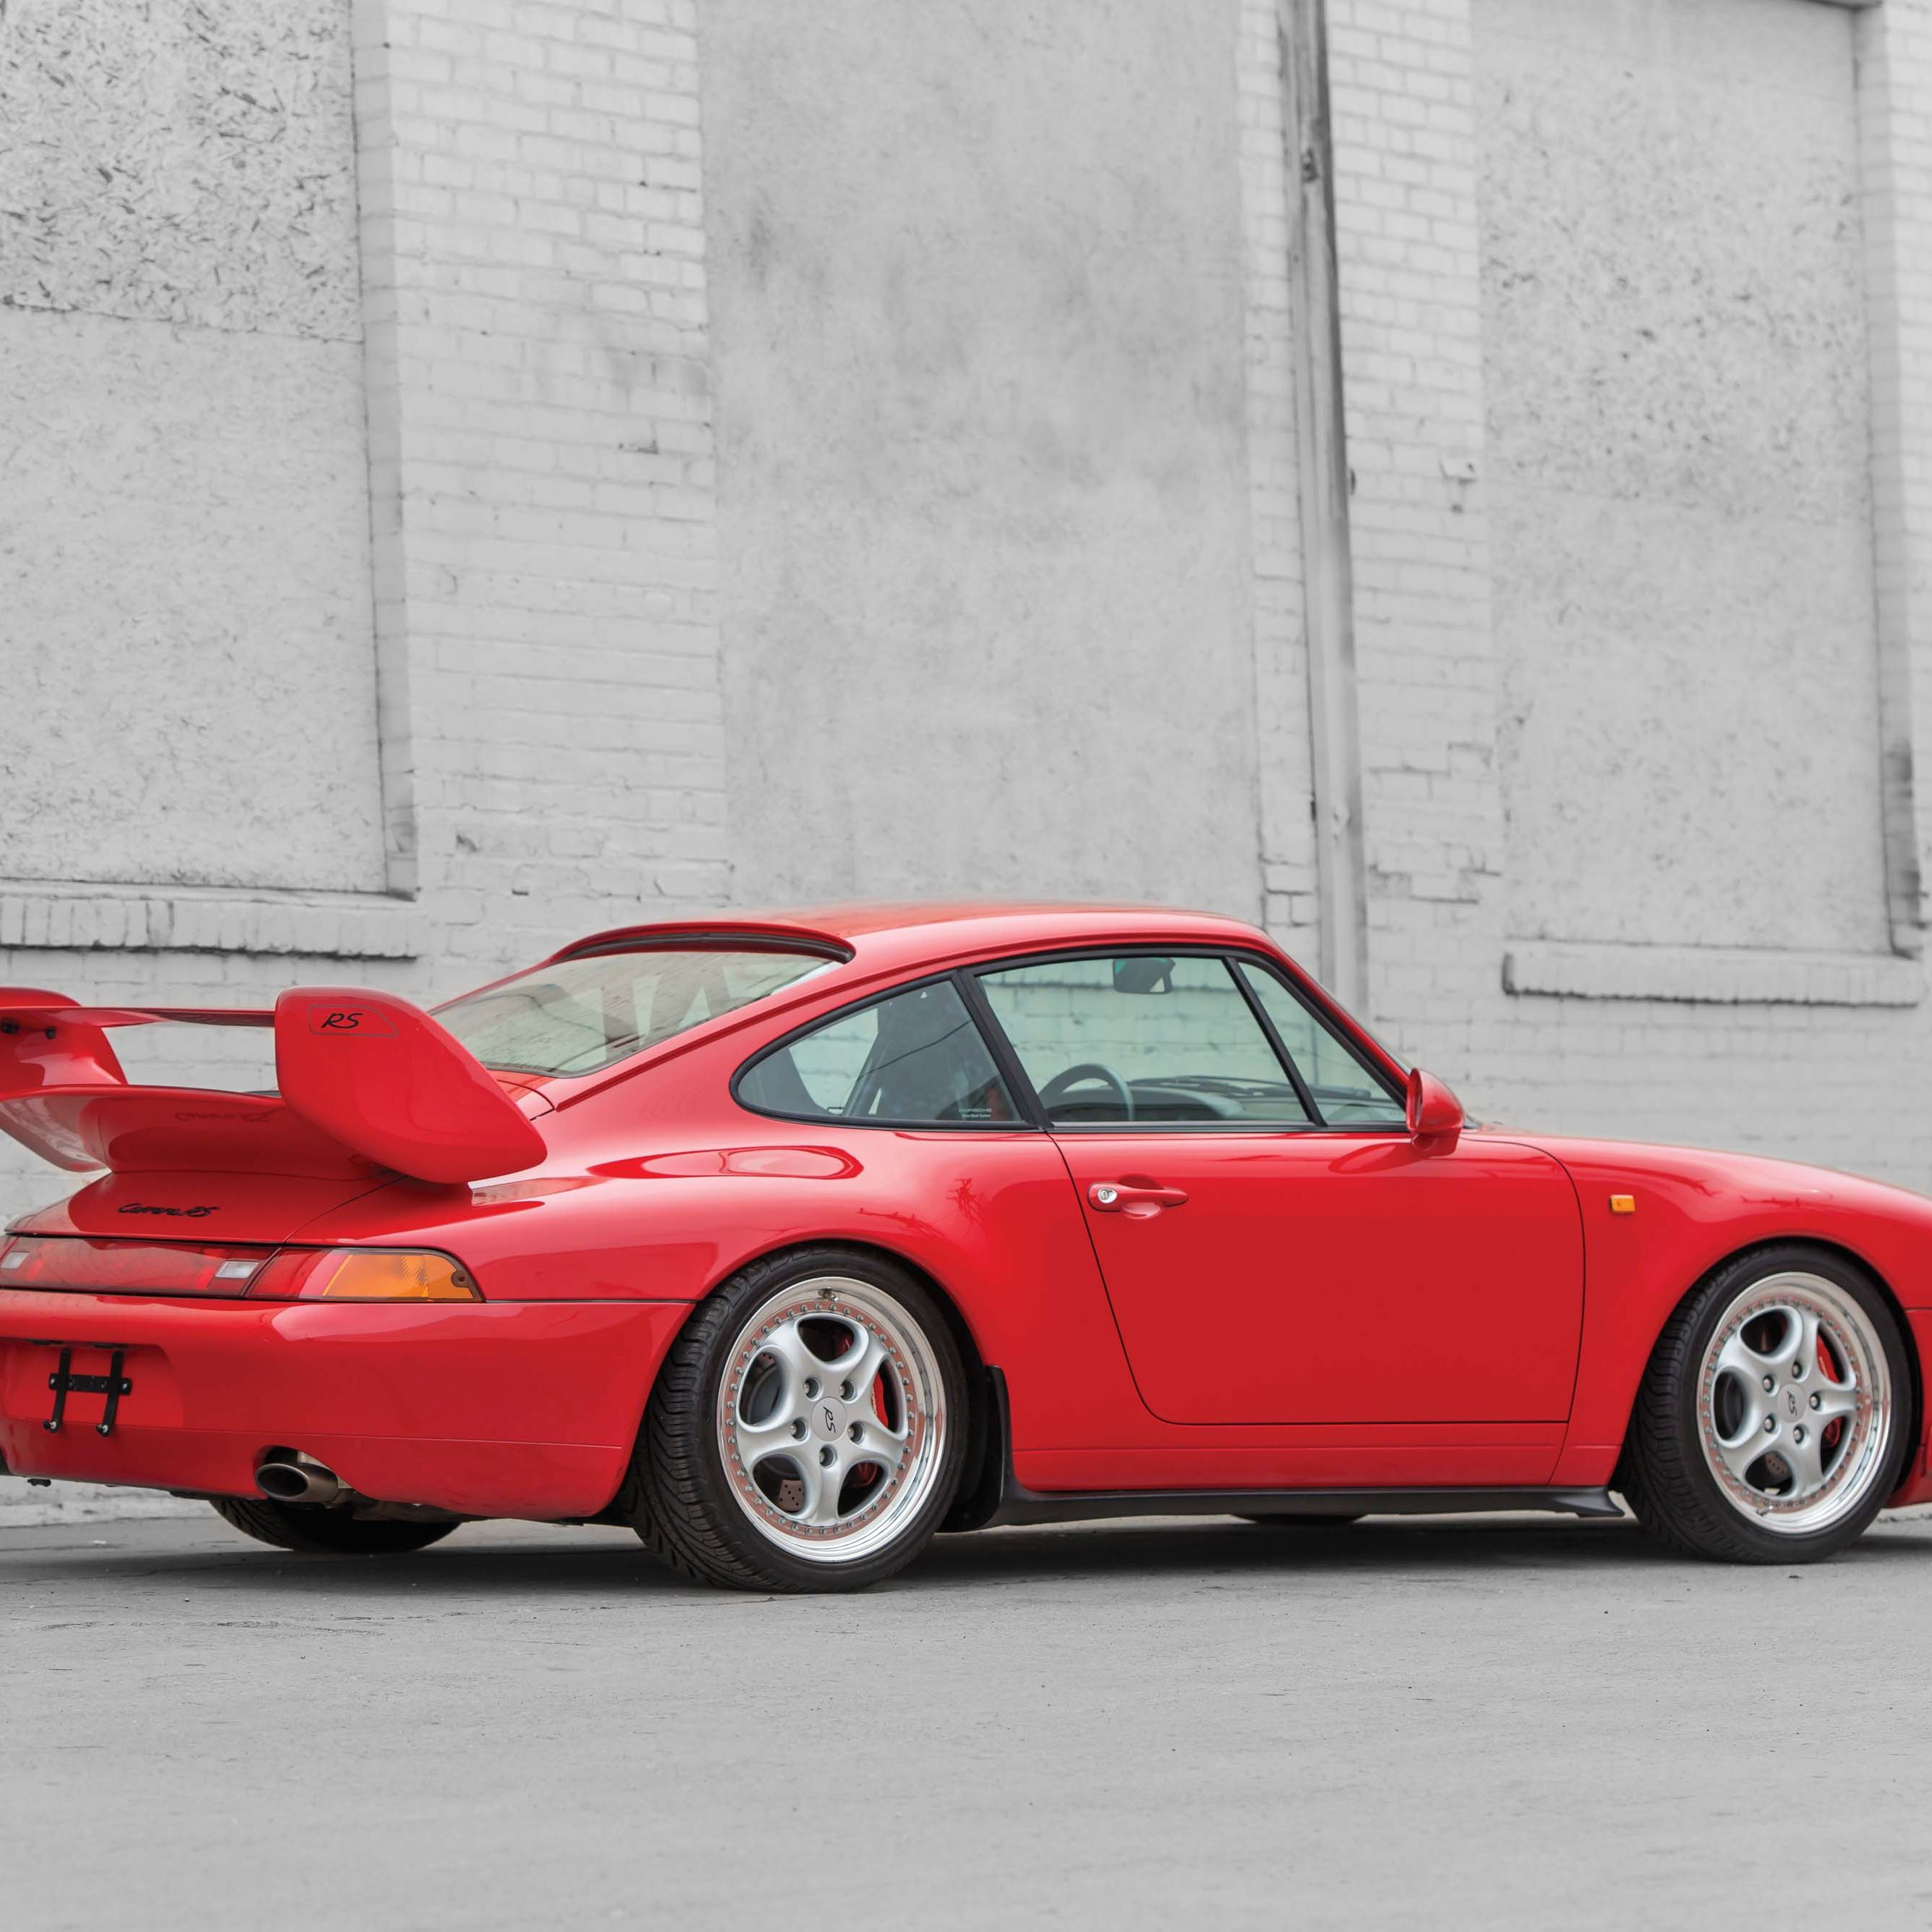 <p>Like most amazing things, and its 2.7 RS spiritual ancestor, this is a homologation special to allow the RSR 3.8 to race in GT4 and GT3.</p>